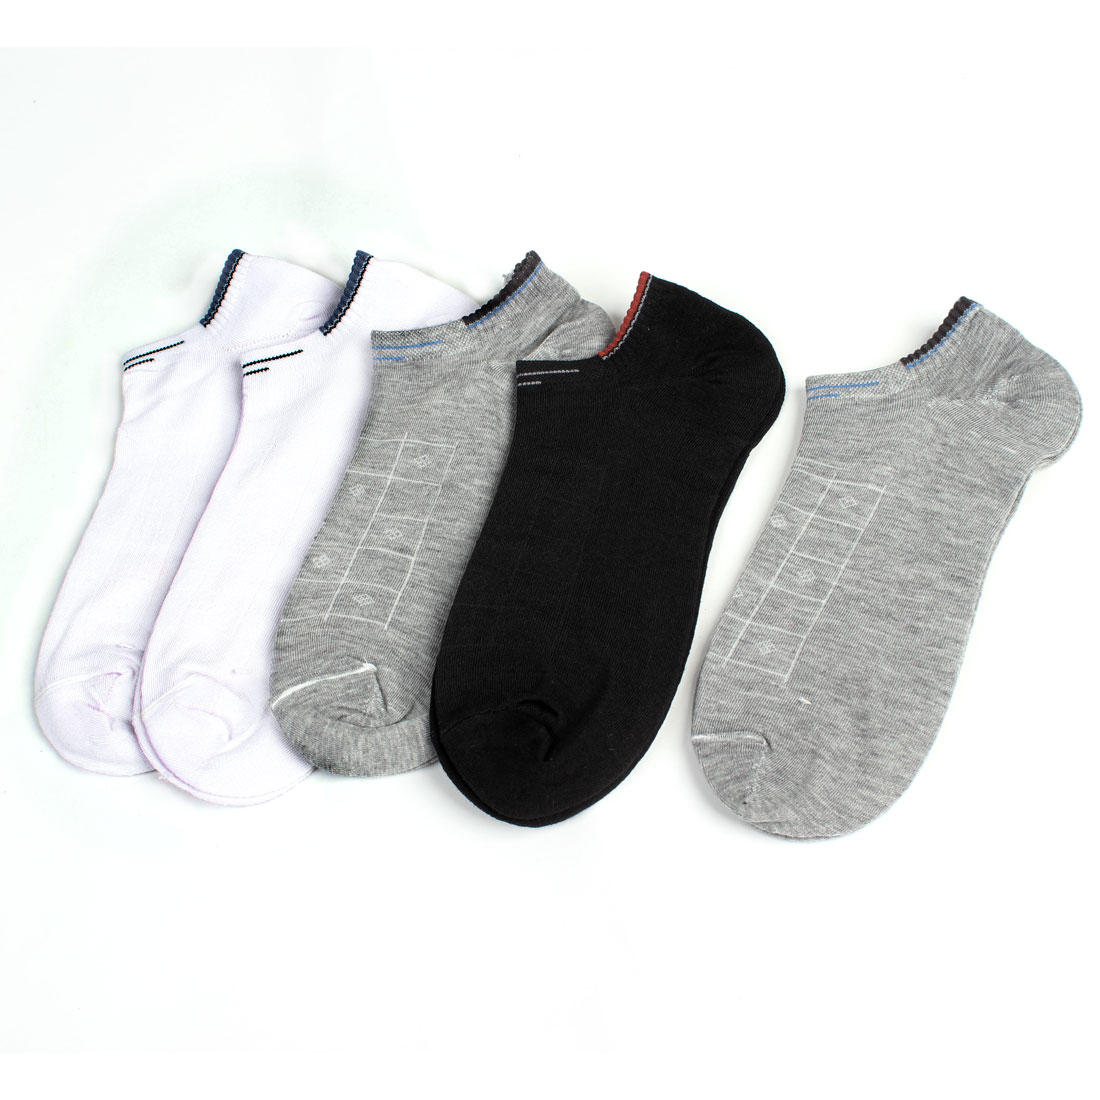 Man Letters Pattern Low Cuff Socks Gray White Black 5 Pairs